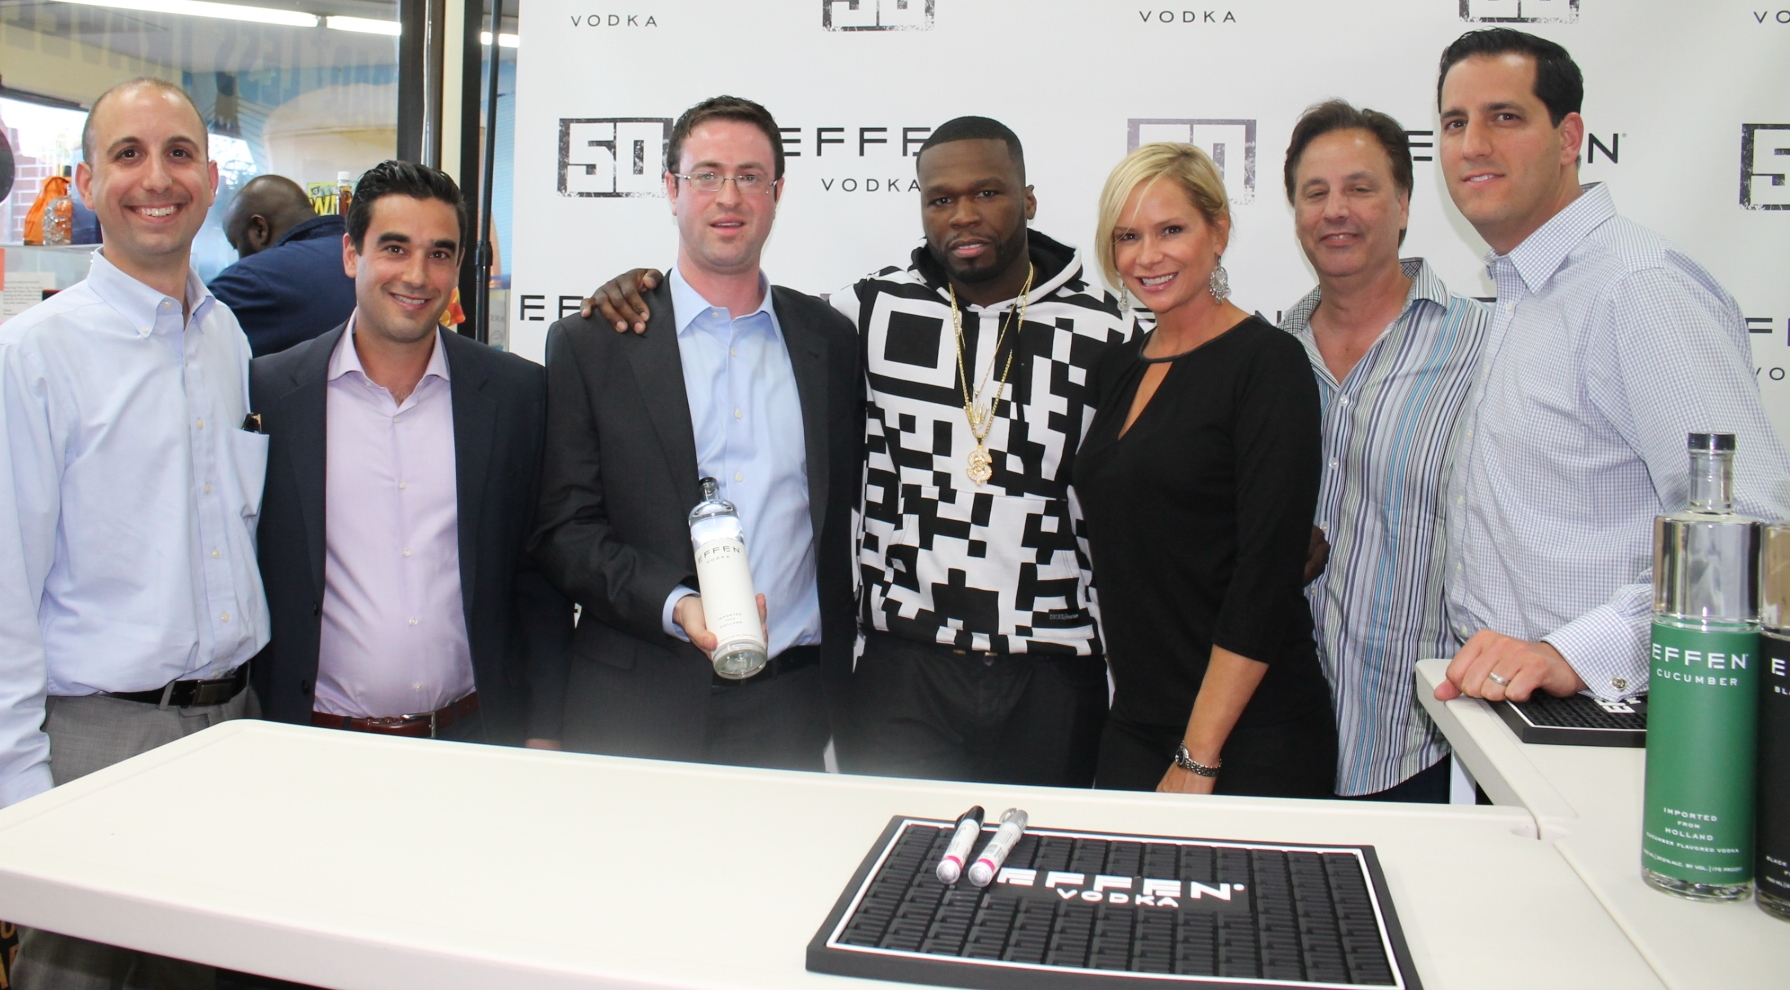 50 Cent Promotes Effen Vodka in Home State